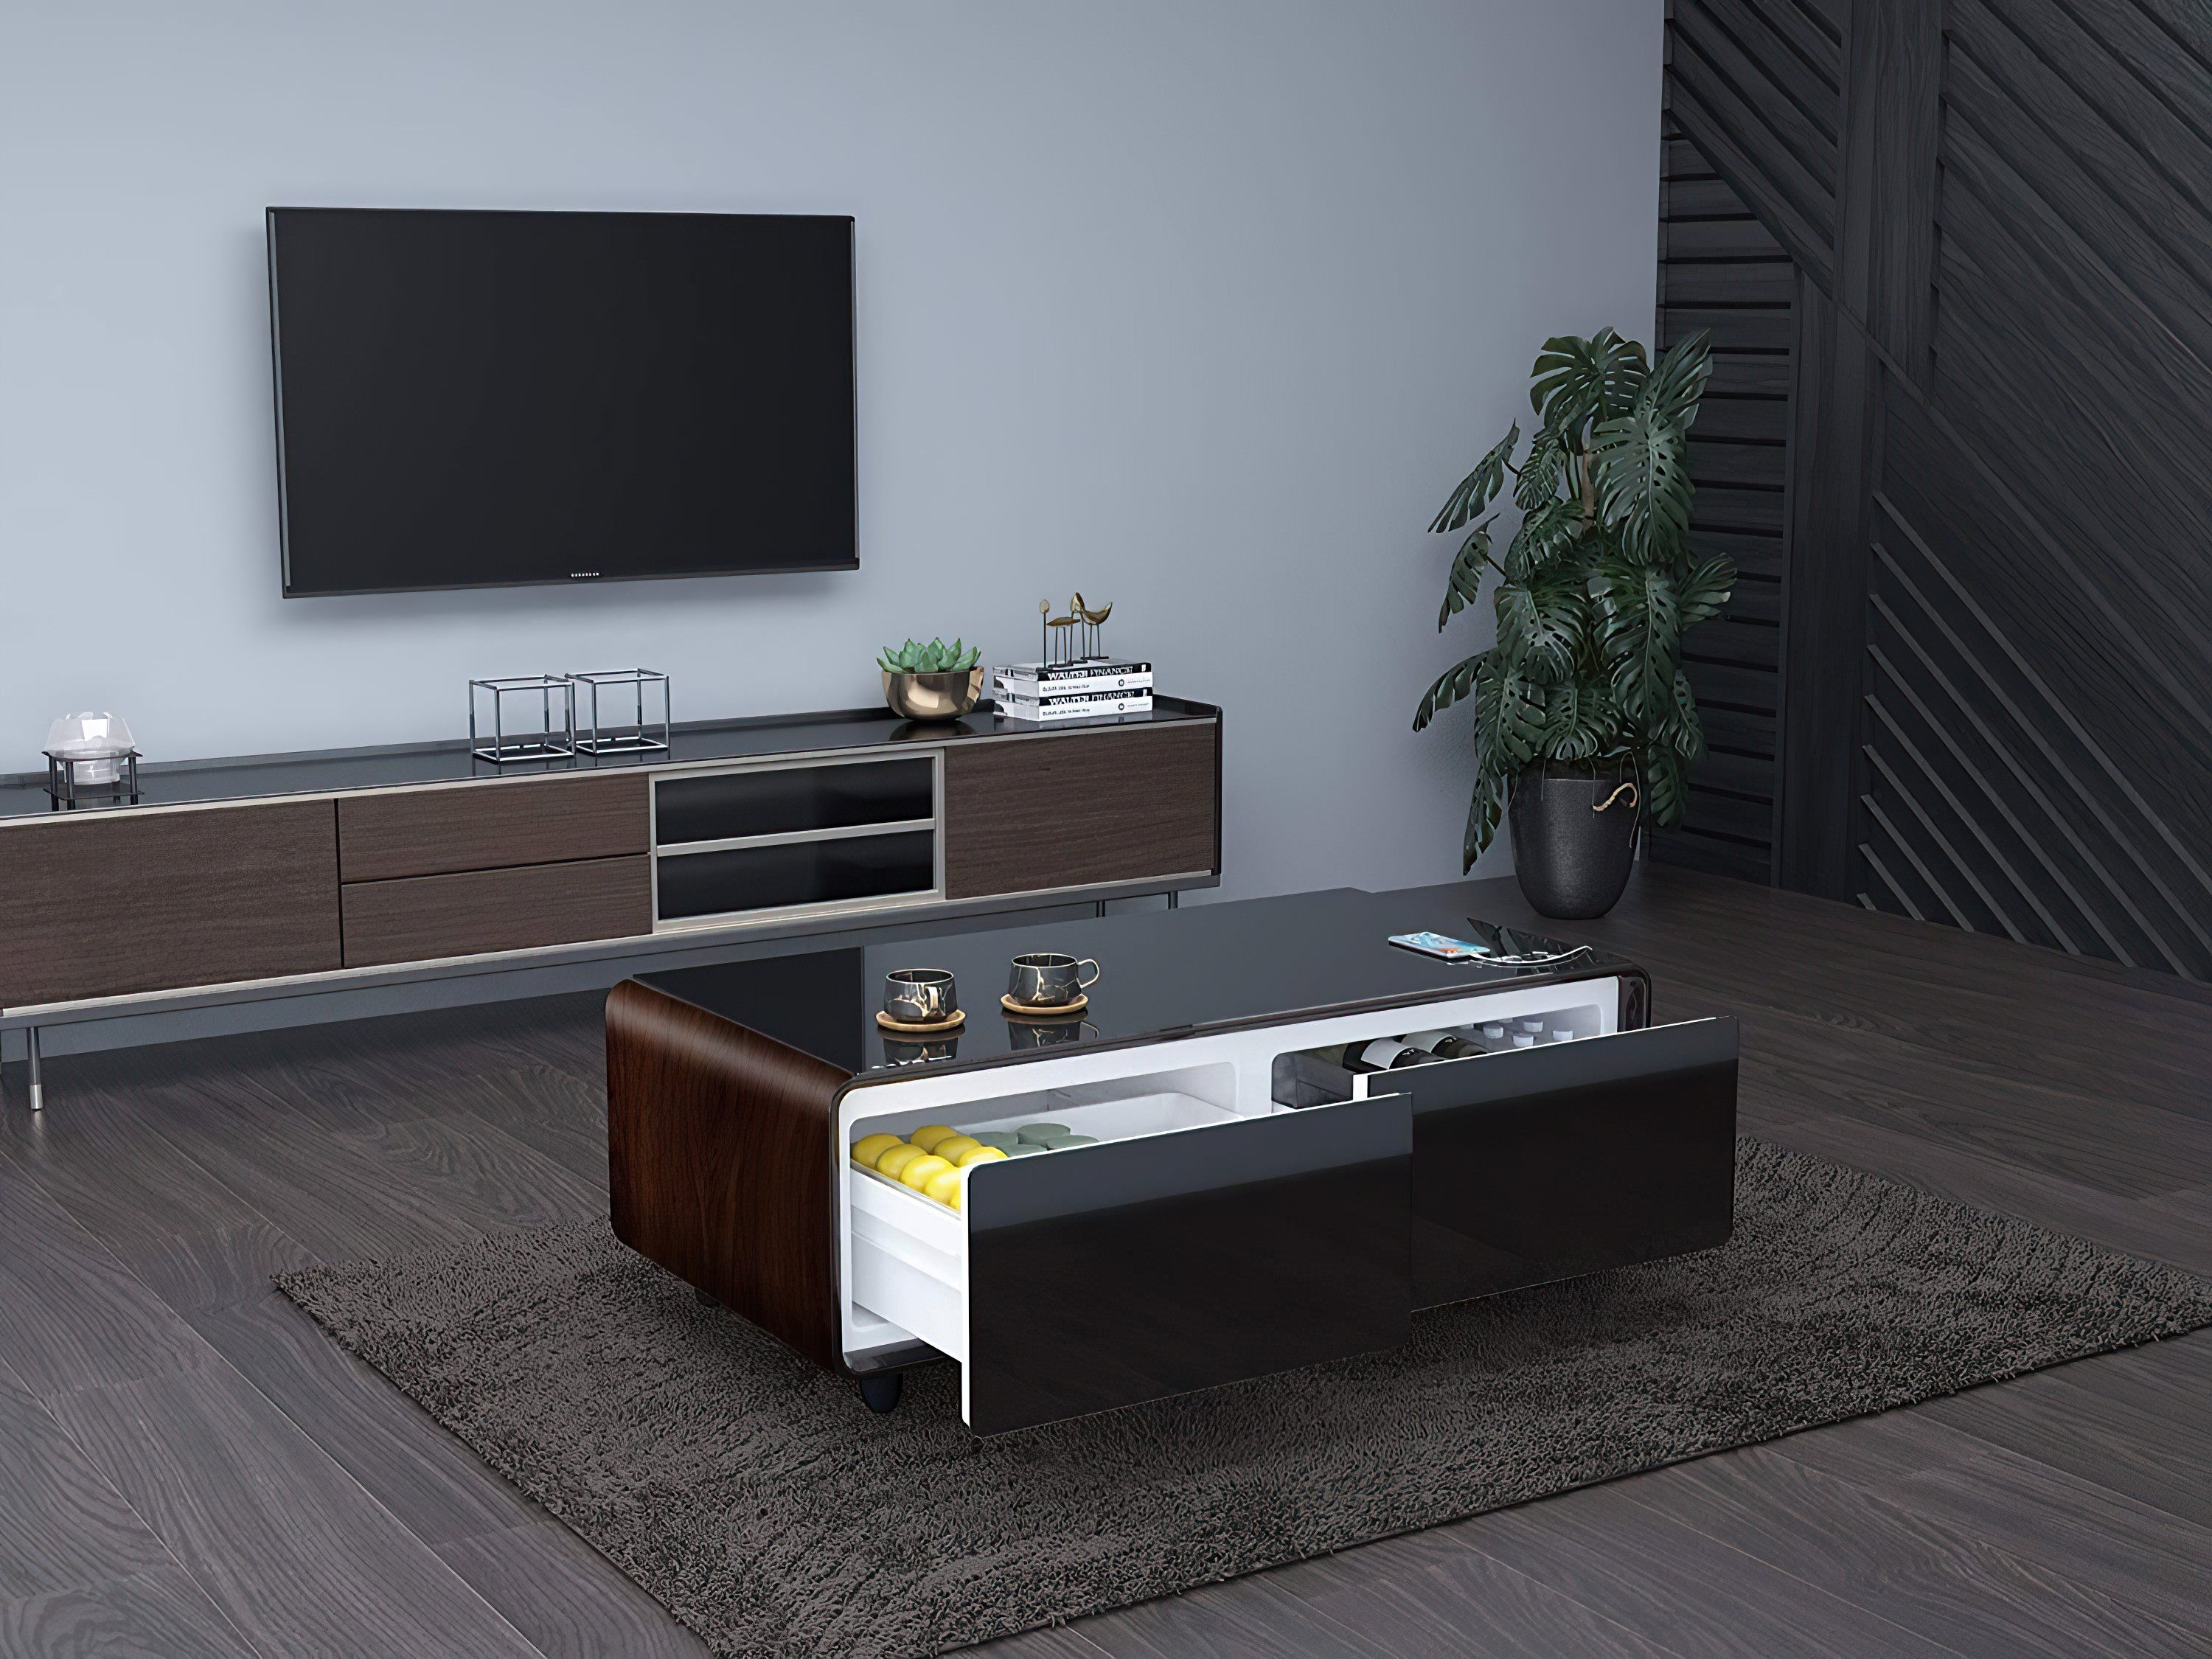 Steinfield Tech Smart Coffee Table In 2021 Table Decor Living Room Coffee Table With Fridge Coffee Table [ 2250 x 3000 Pixel ]